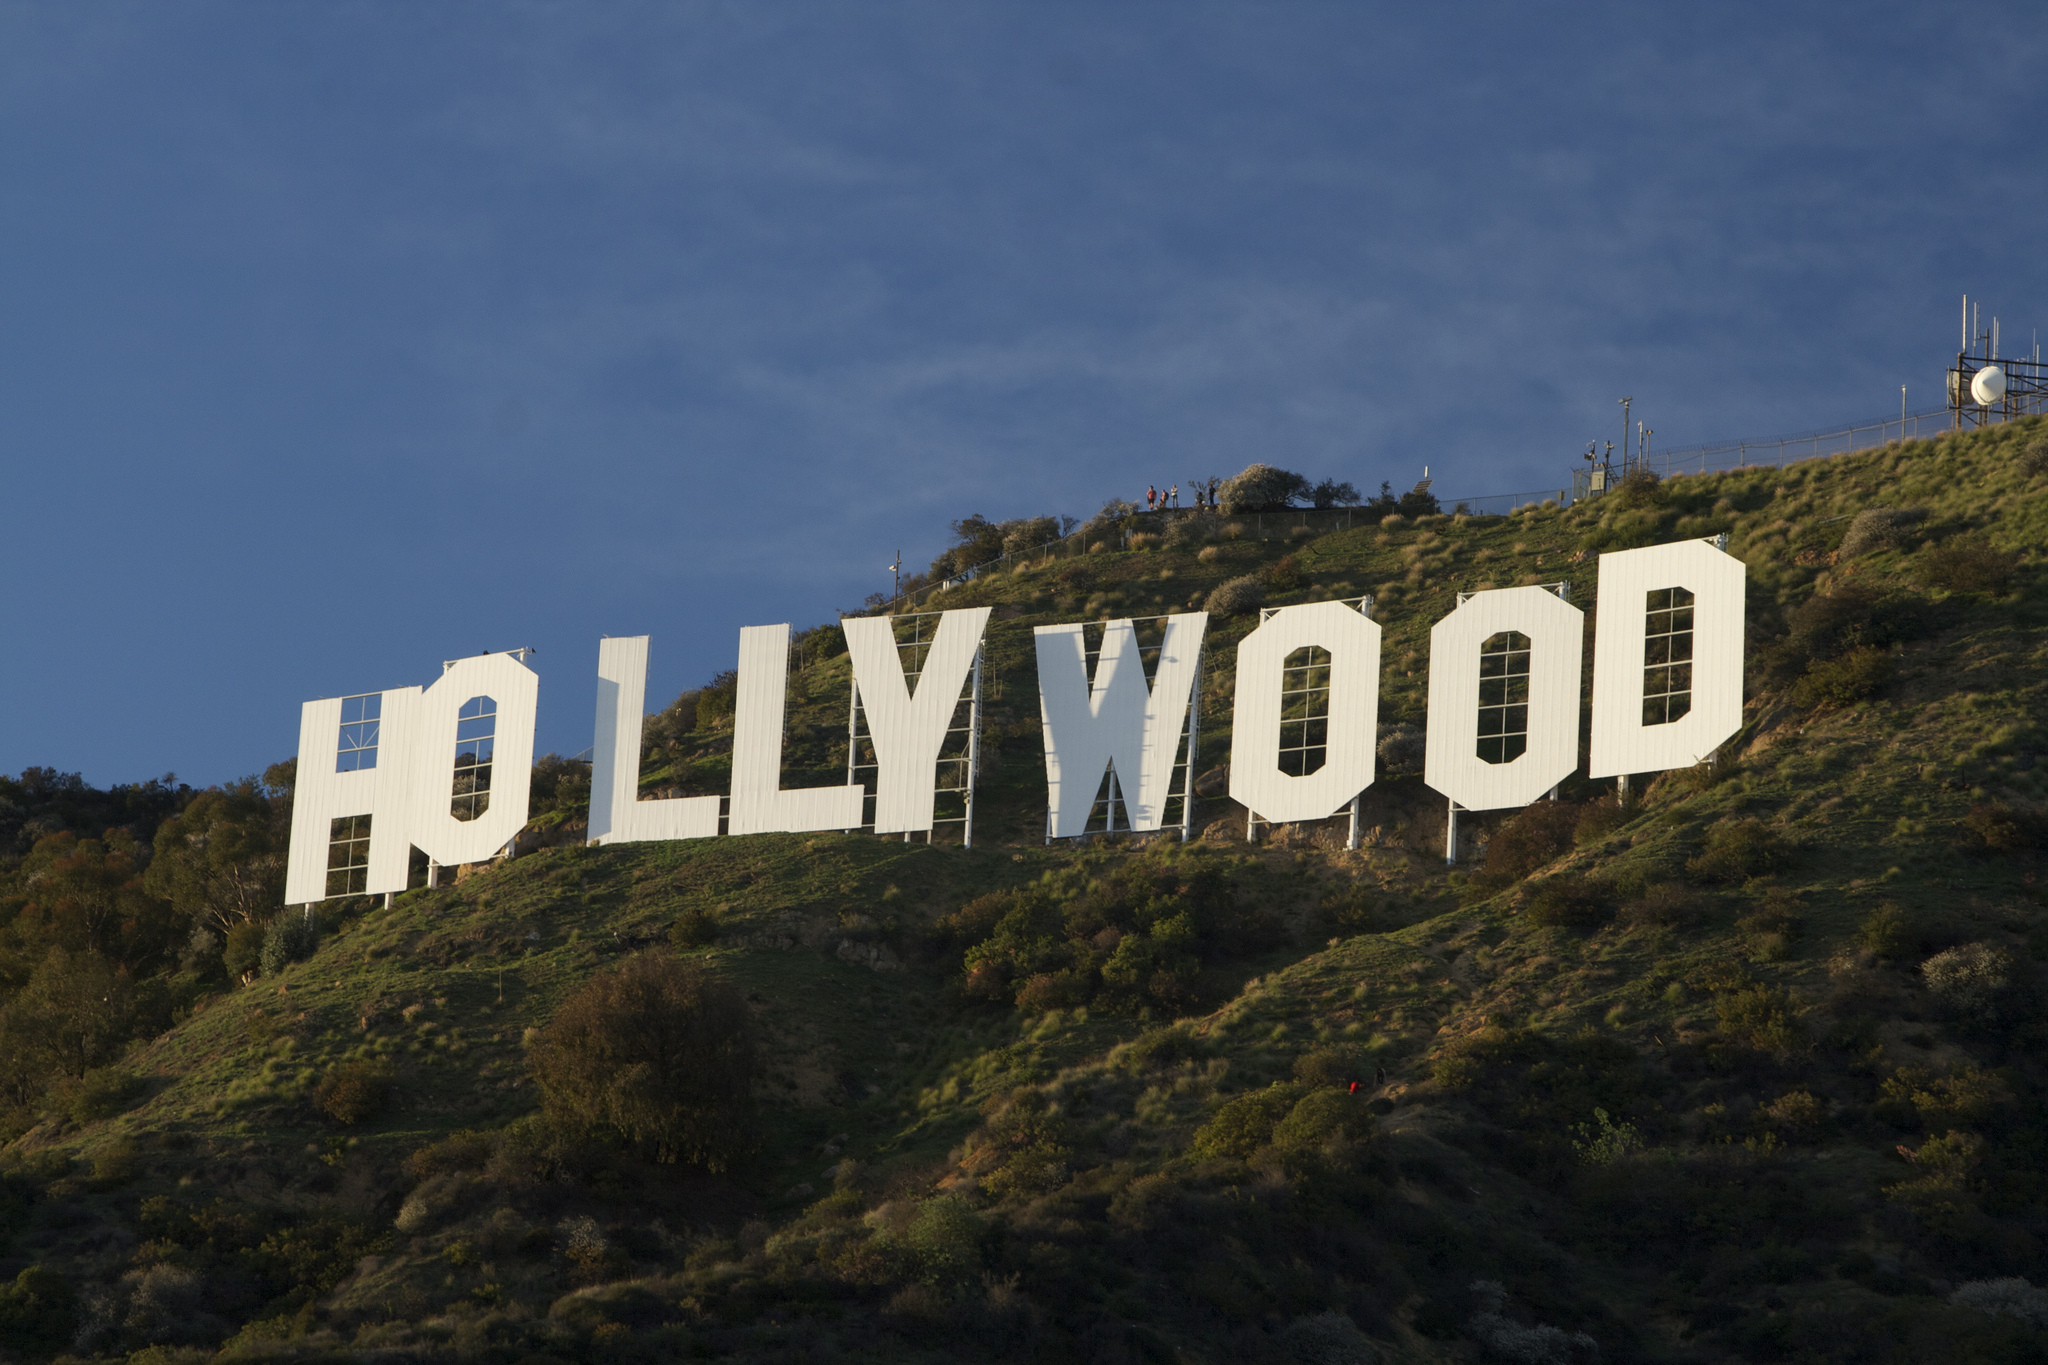 """Hollywood Sign"" by Gnaphron is licensed under CC 2.0."